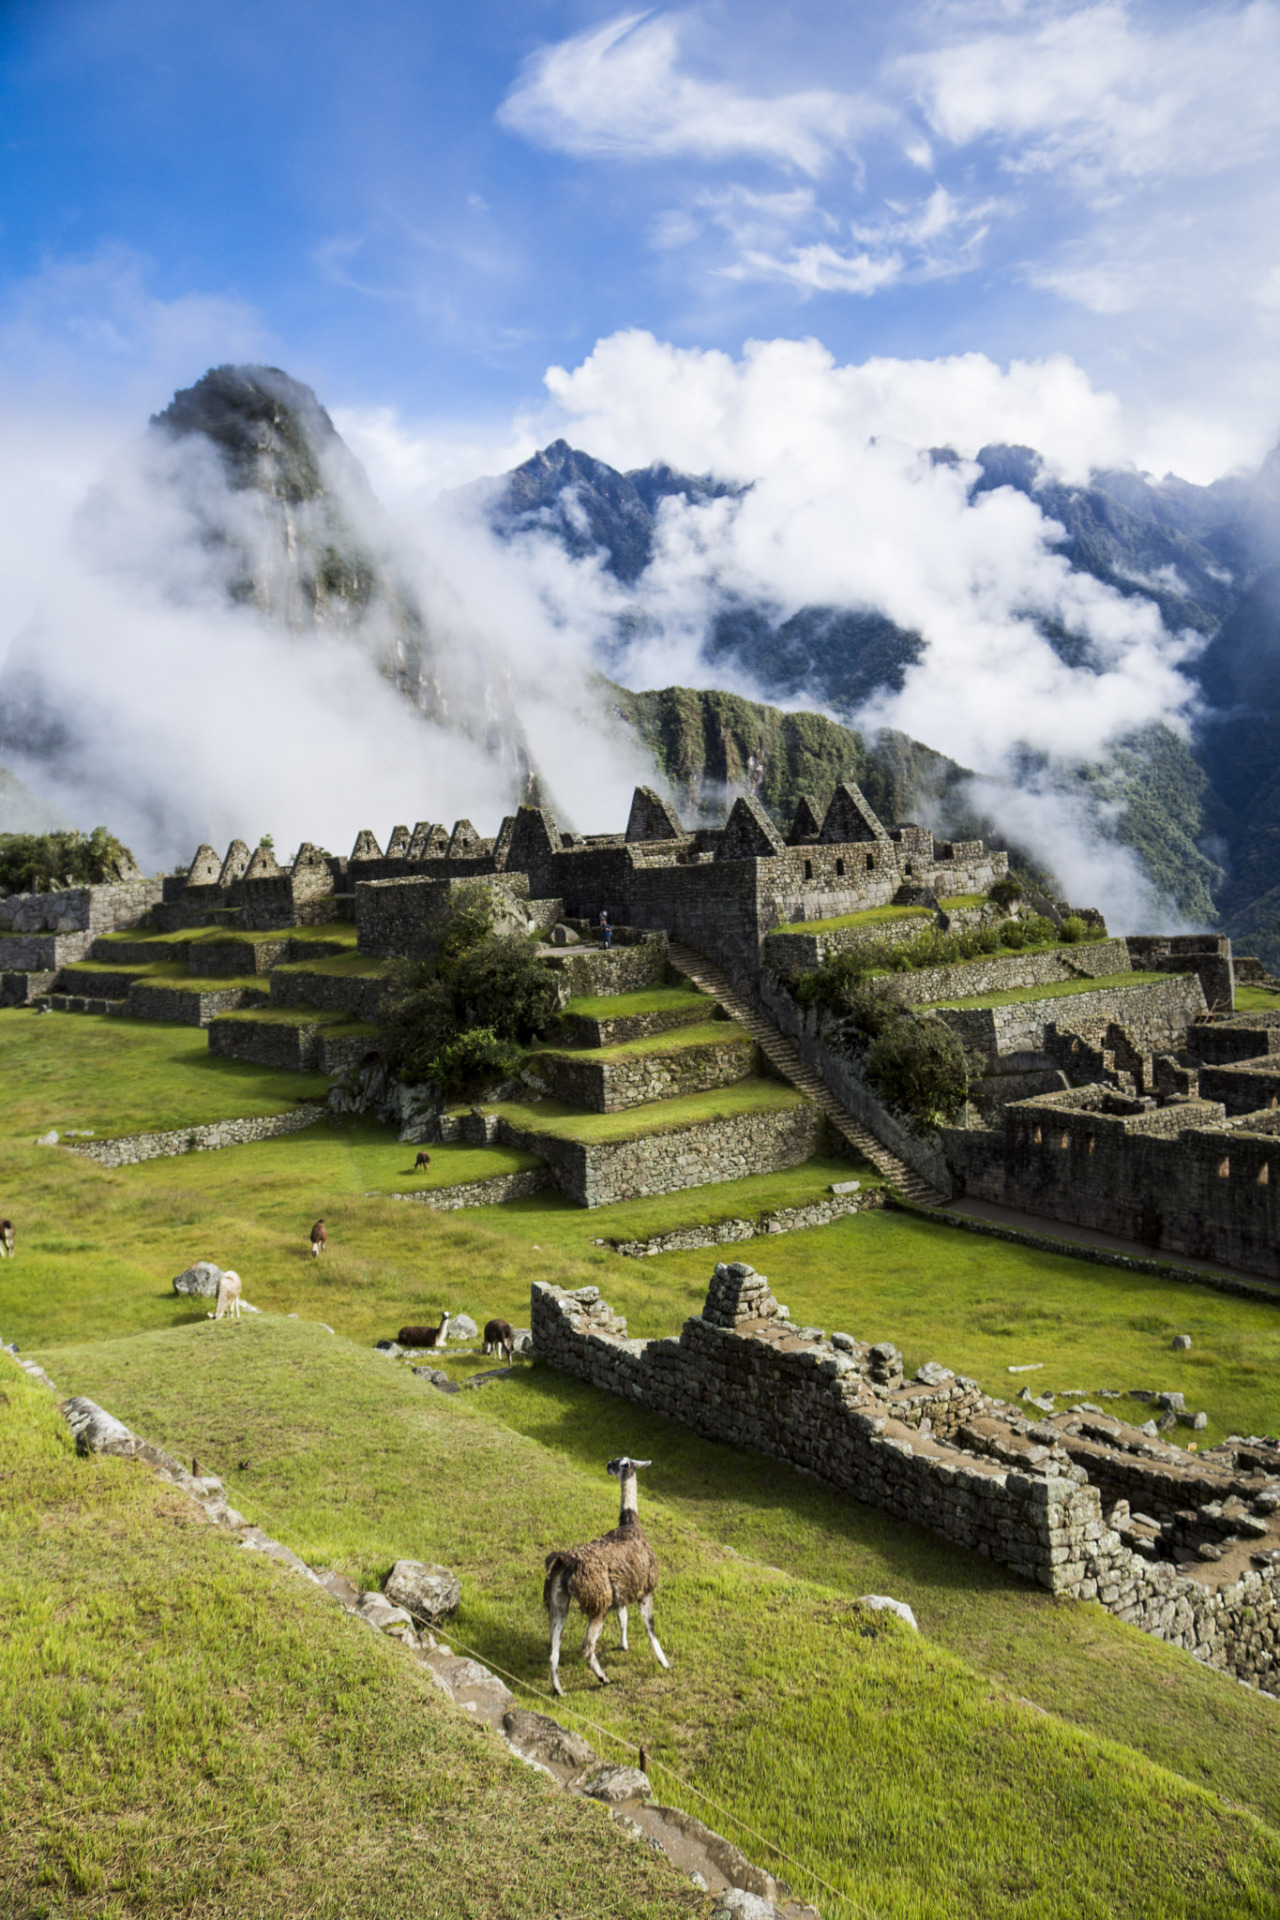 Machu Picchu up in the clouds / Peru